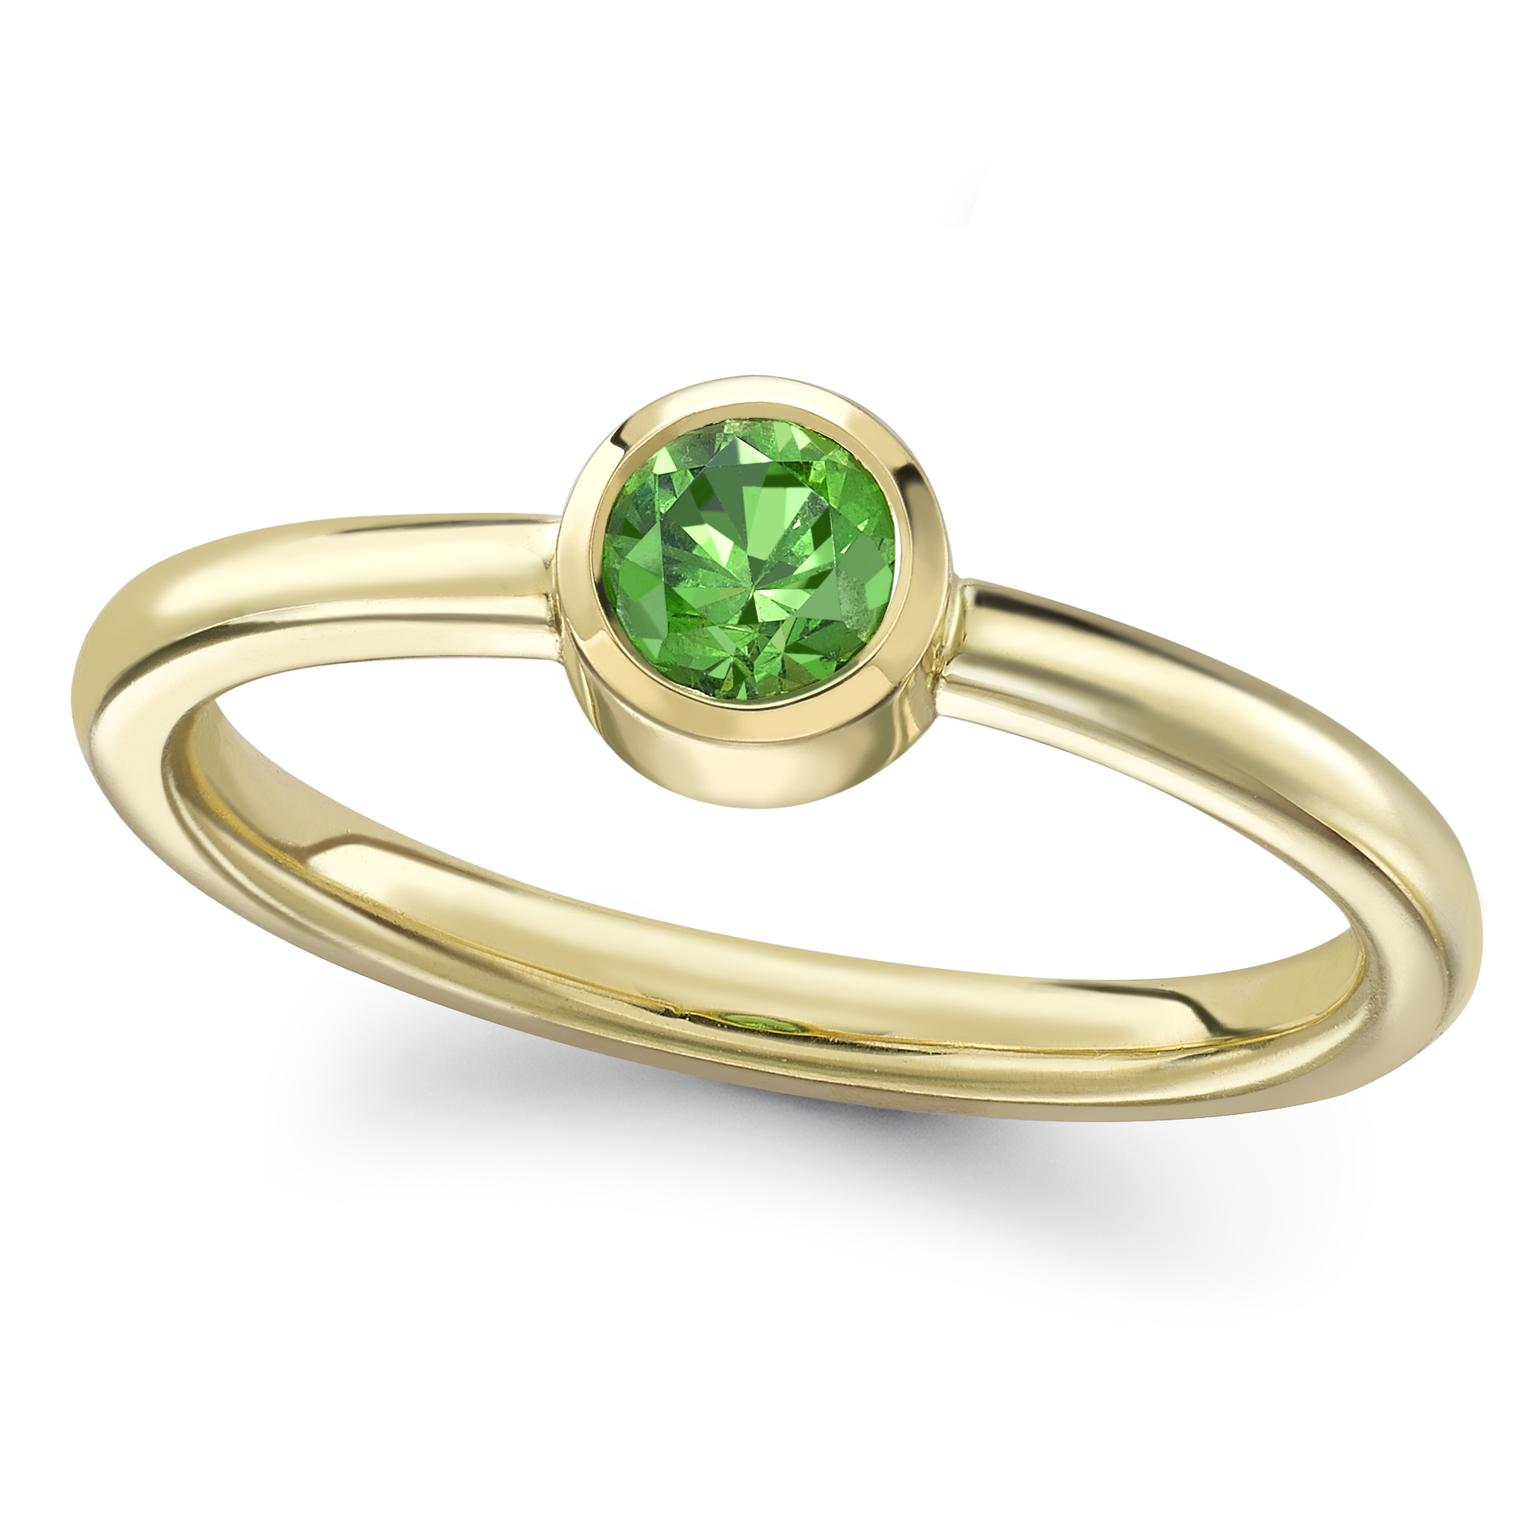 Theo Fennell Demantoid garnet ring